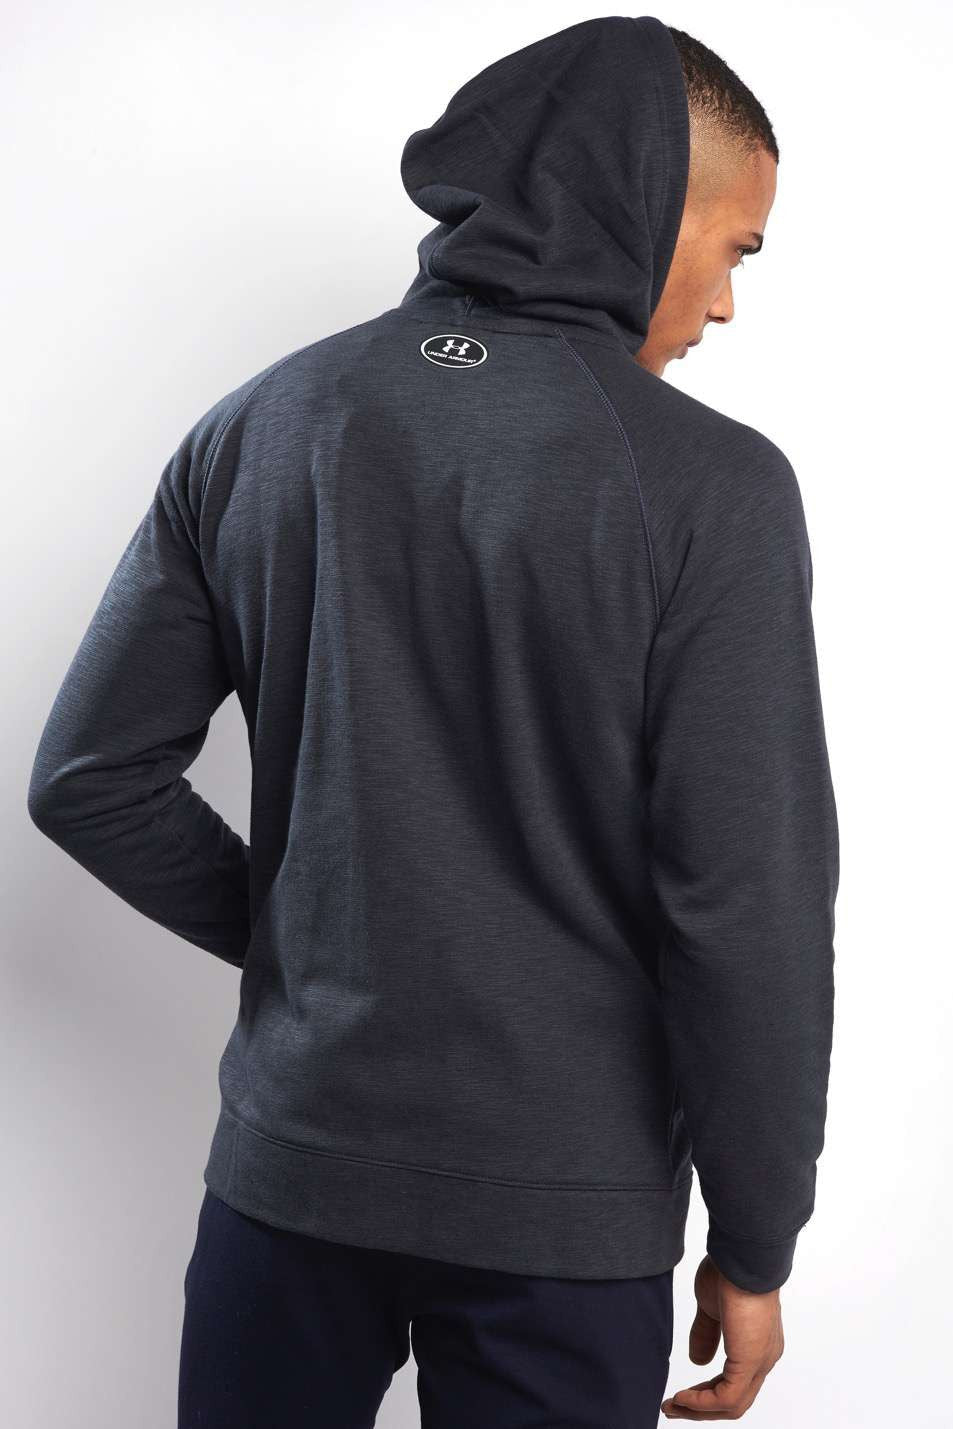 Under Armour UA Sportstyle Fleece Full Zip Hoody - Black image 3 - The Sports Edit